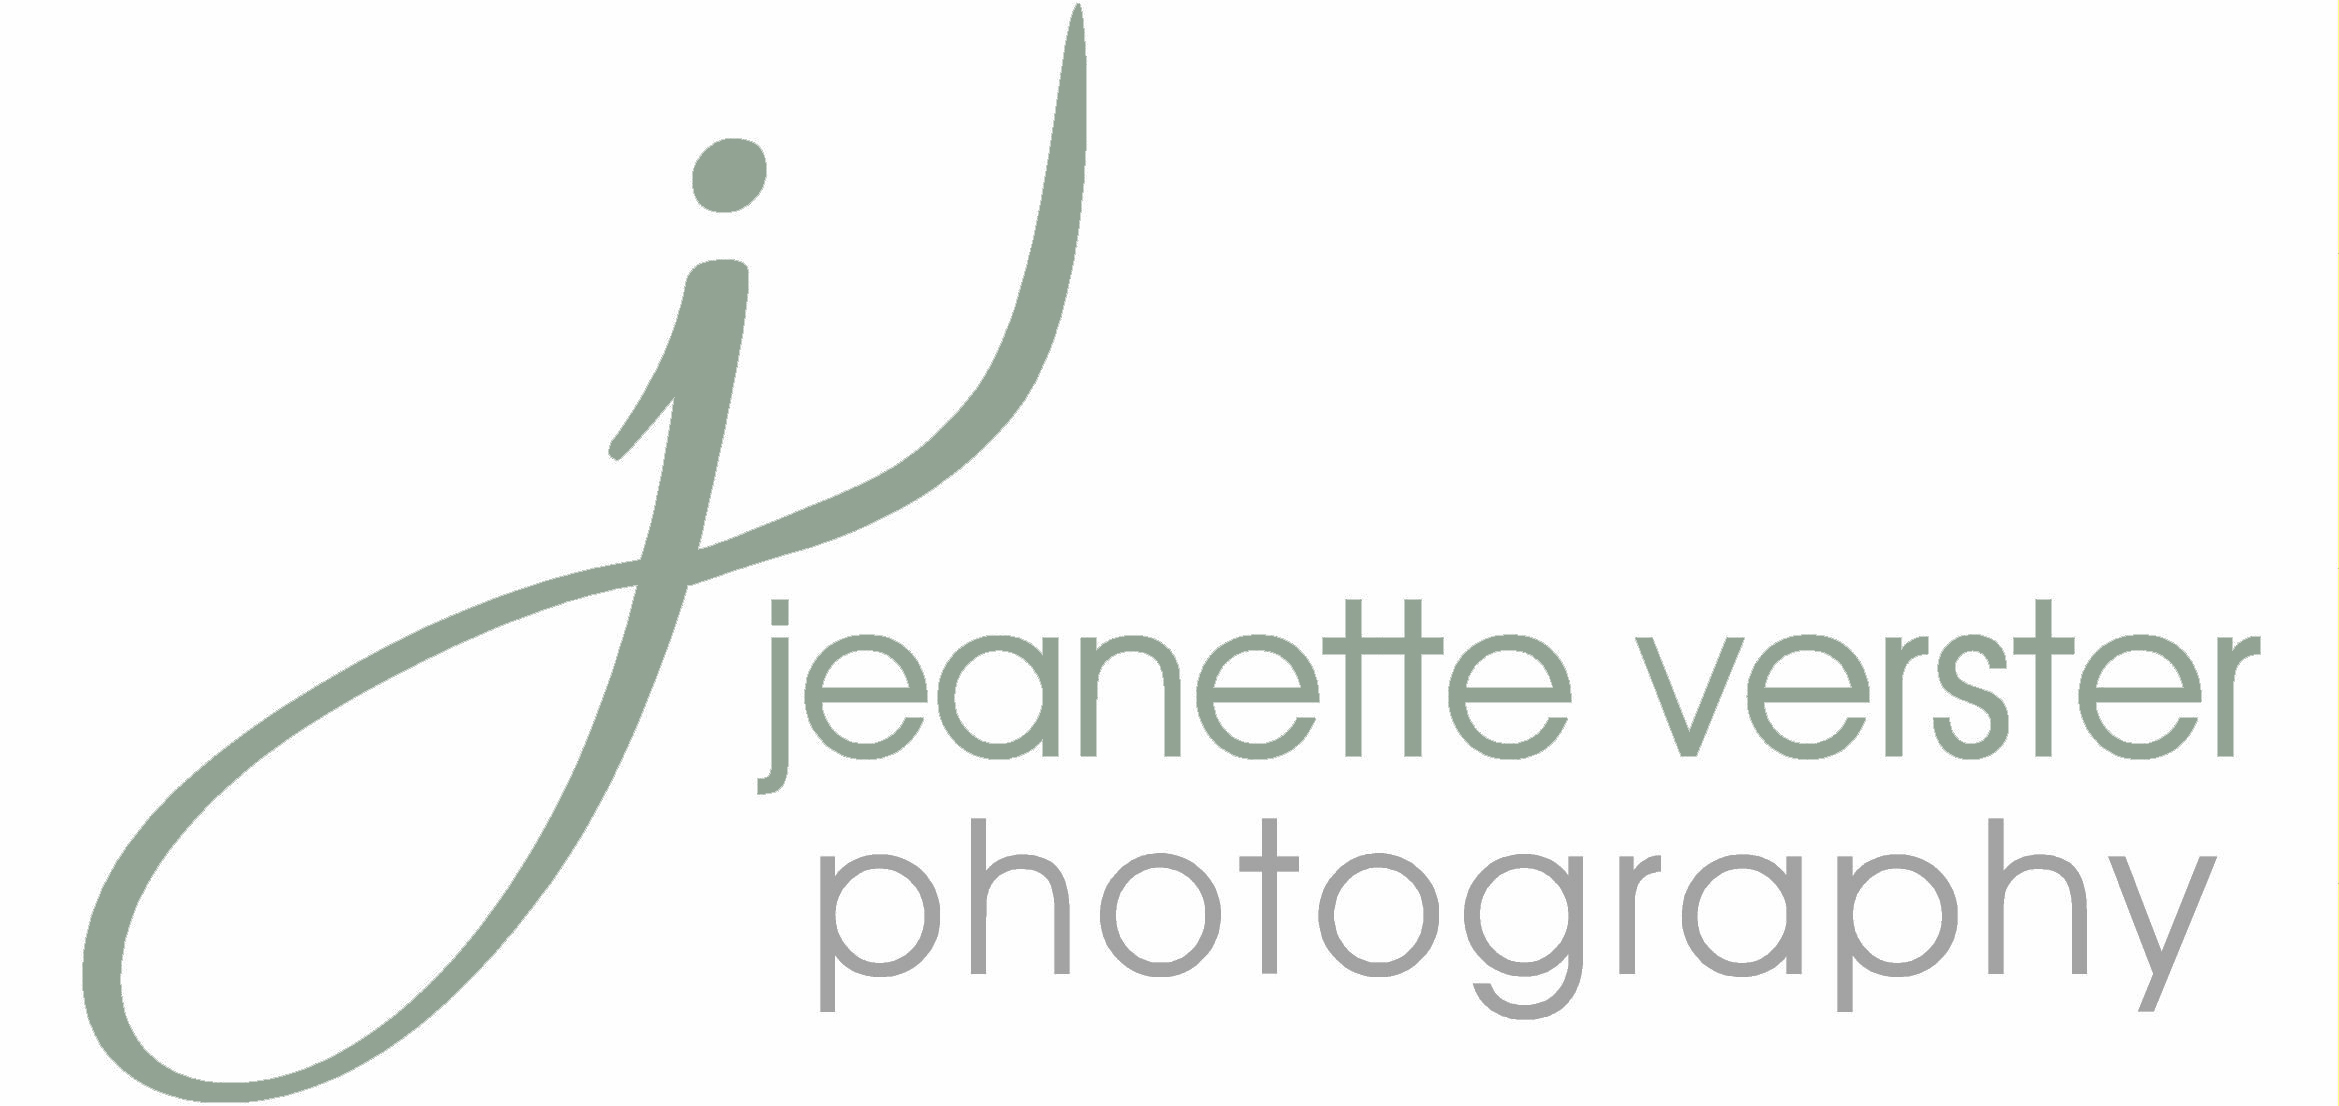 Jeanette Verster Photography